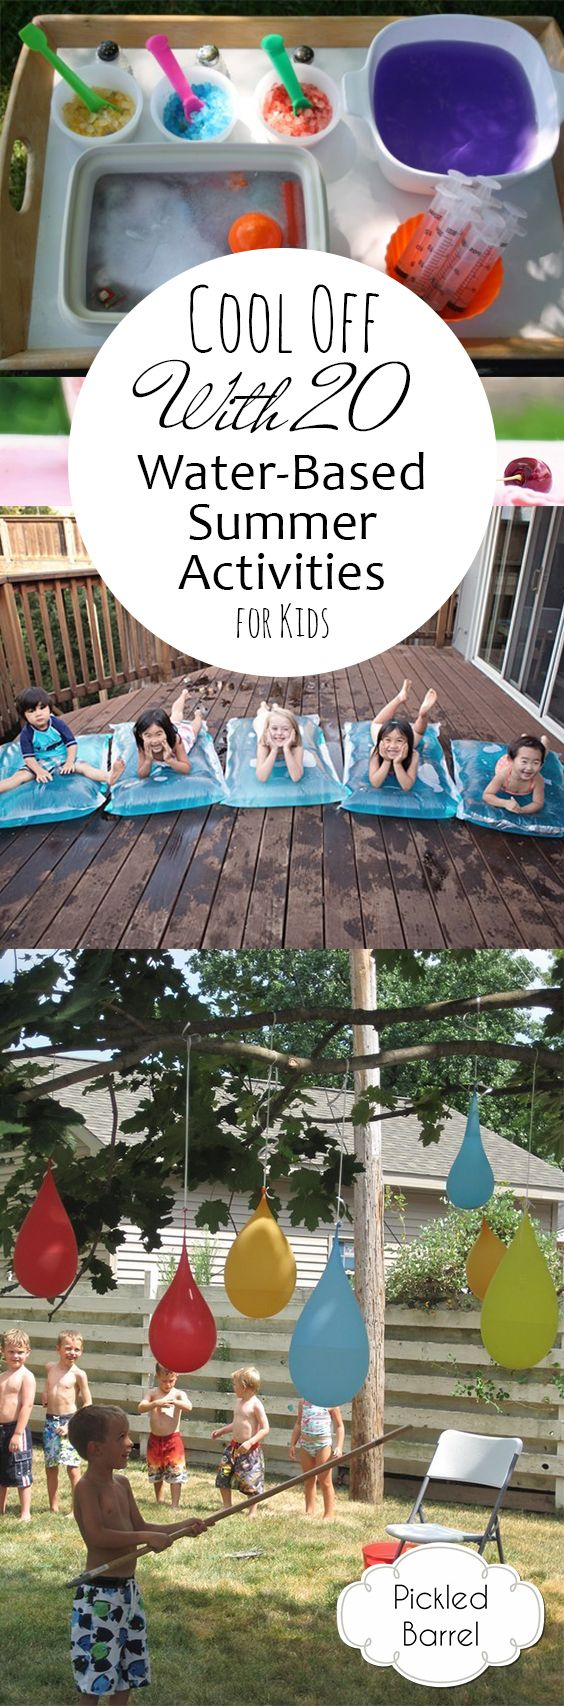 cool off with 20 waterbased summer activities for kids